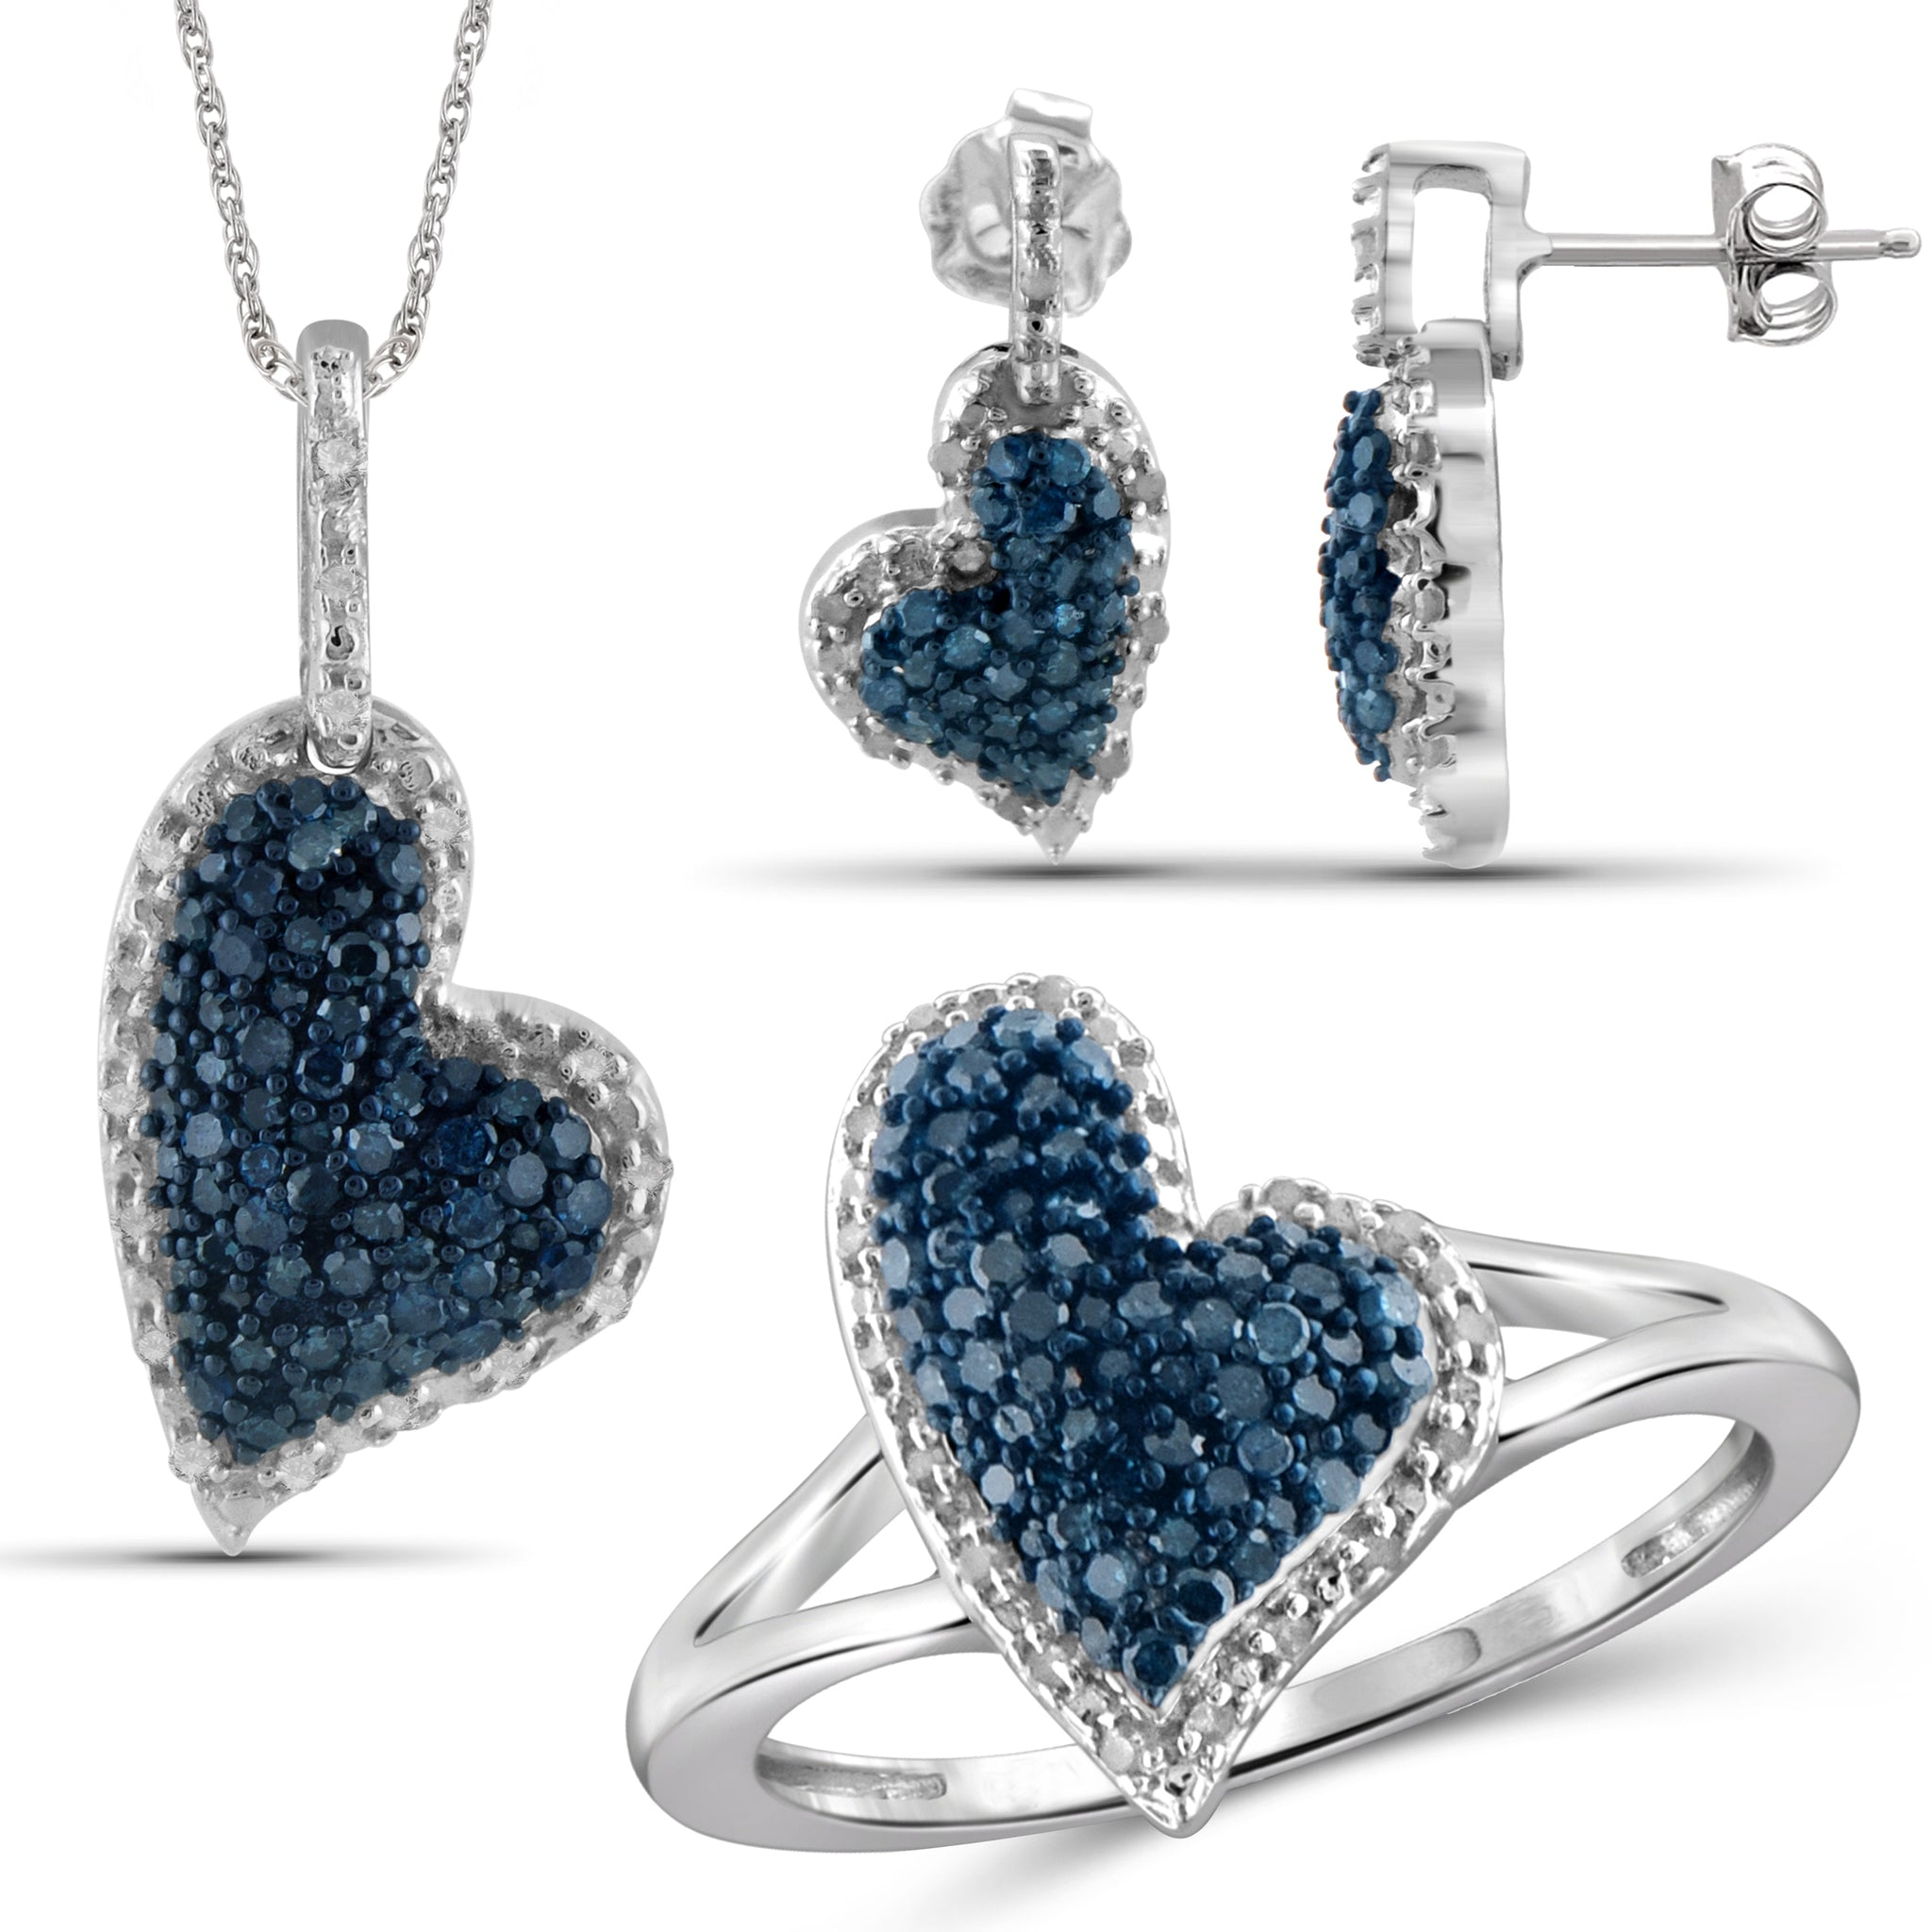 JewelonFire 1.00 Carat T.W. Blue And White Diamond Sterling Silver 3 Piece Heart Jewelry Set